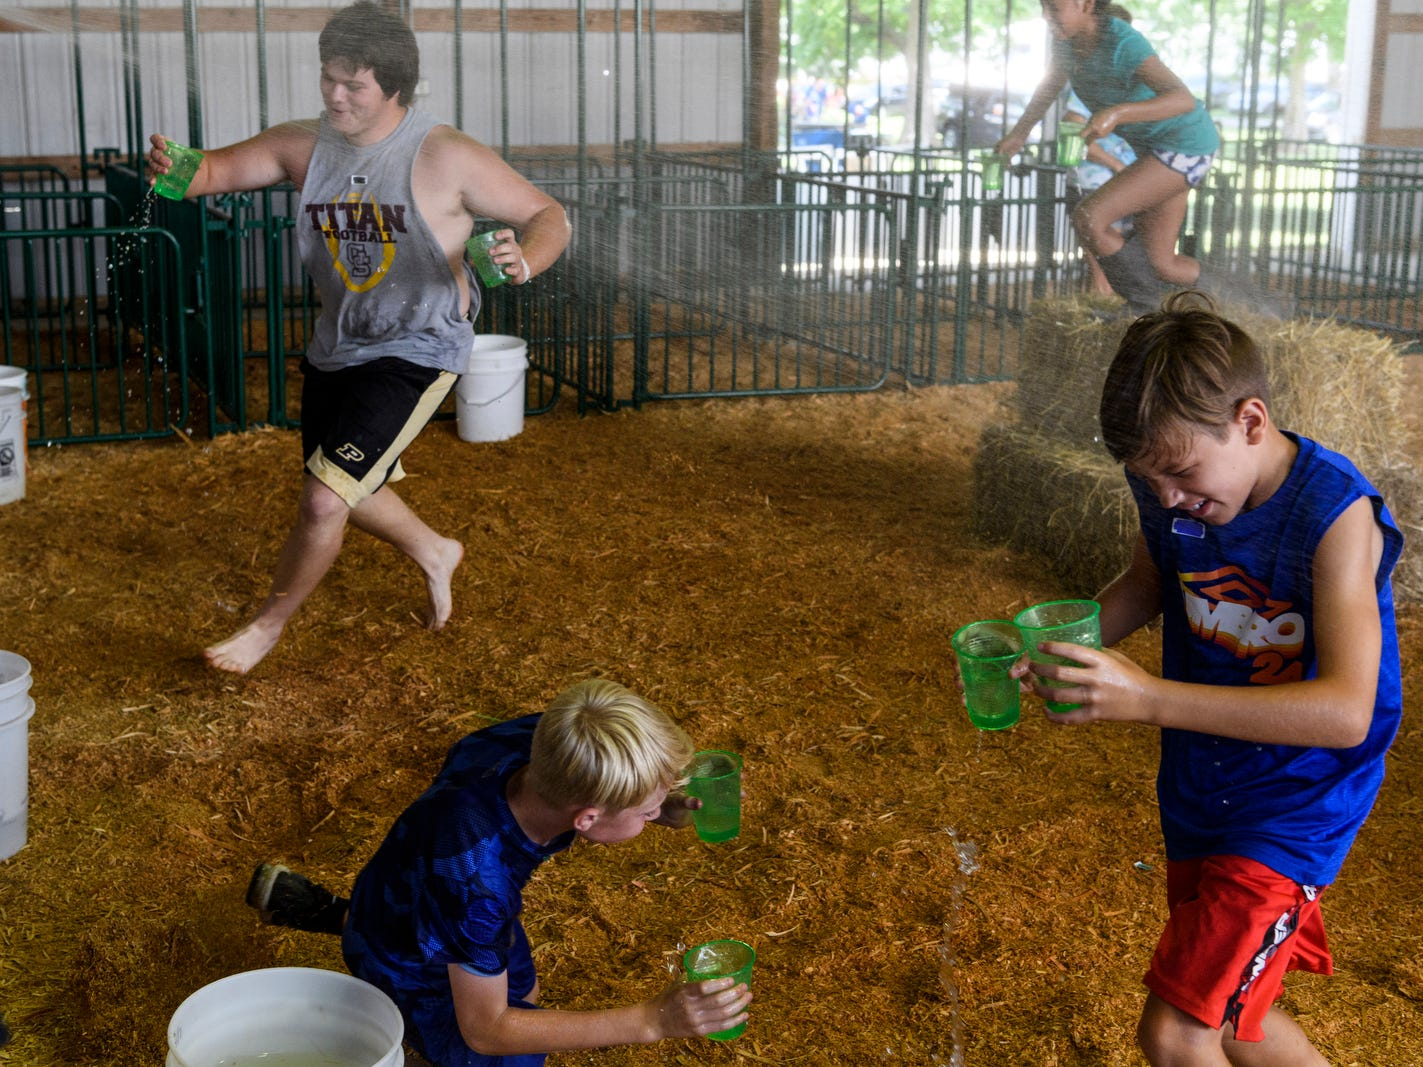 "Volunteer Kathy Klueg, not pictured, soaks 4-Hers as they compete in the straw bale relay during the 4-H Barn Olympics inside the Livestock Barn at the Vanderburgh County Fair, Monday afternoon, July 23. ""We want to have fun with the kids before all the craziness starts [with animal shows and other fair activities],"" Jill Vieira, a local 4-H leader who organized the games, said."